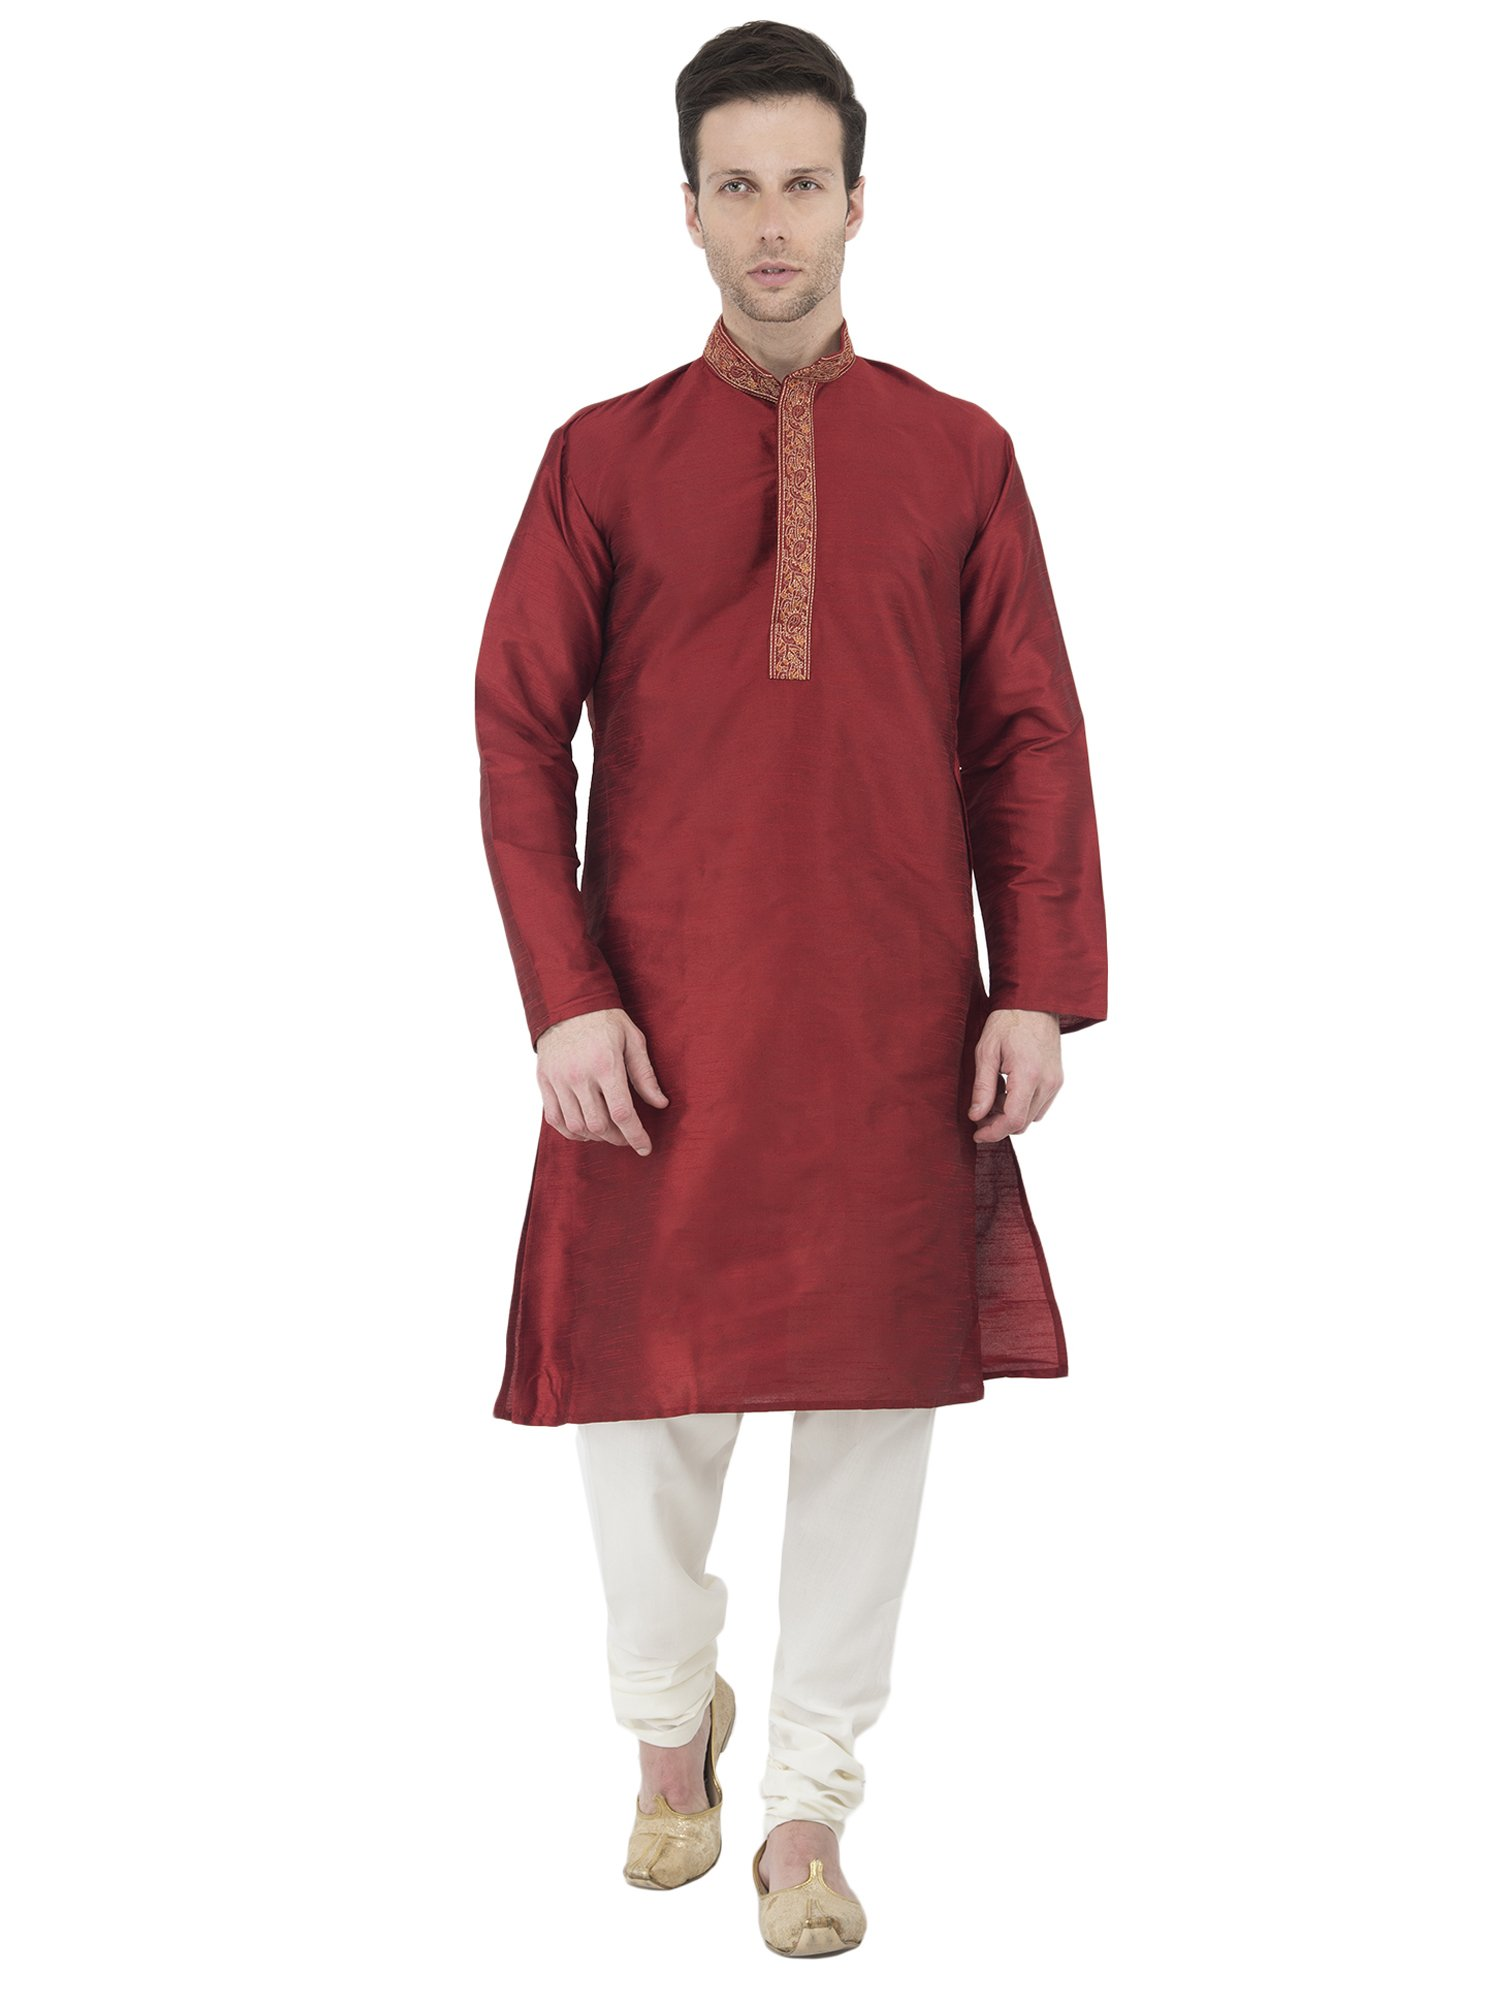 Long Sleeve Button Down Shirt Embroidered Mens Kurta Pajama Set Red India Yoga Summer Dress -L